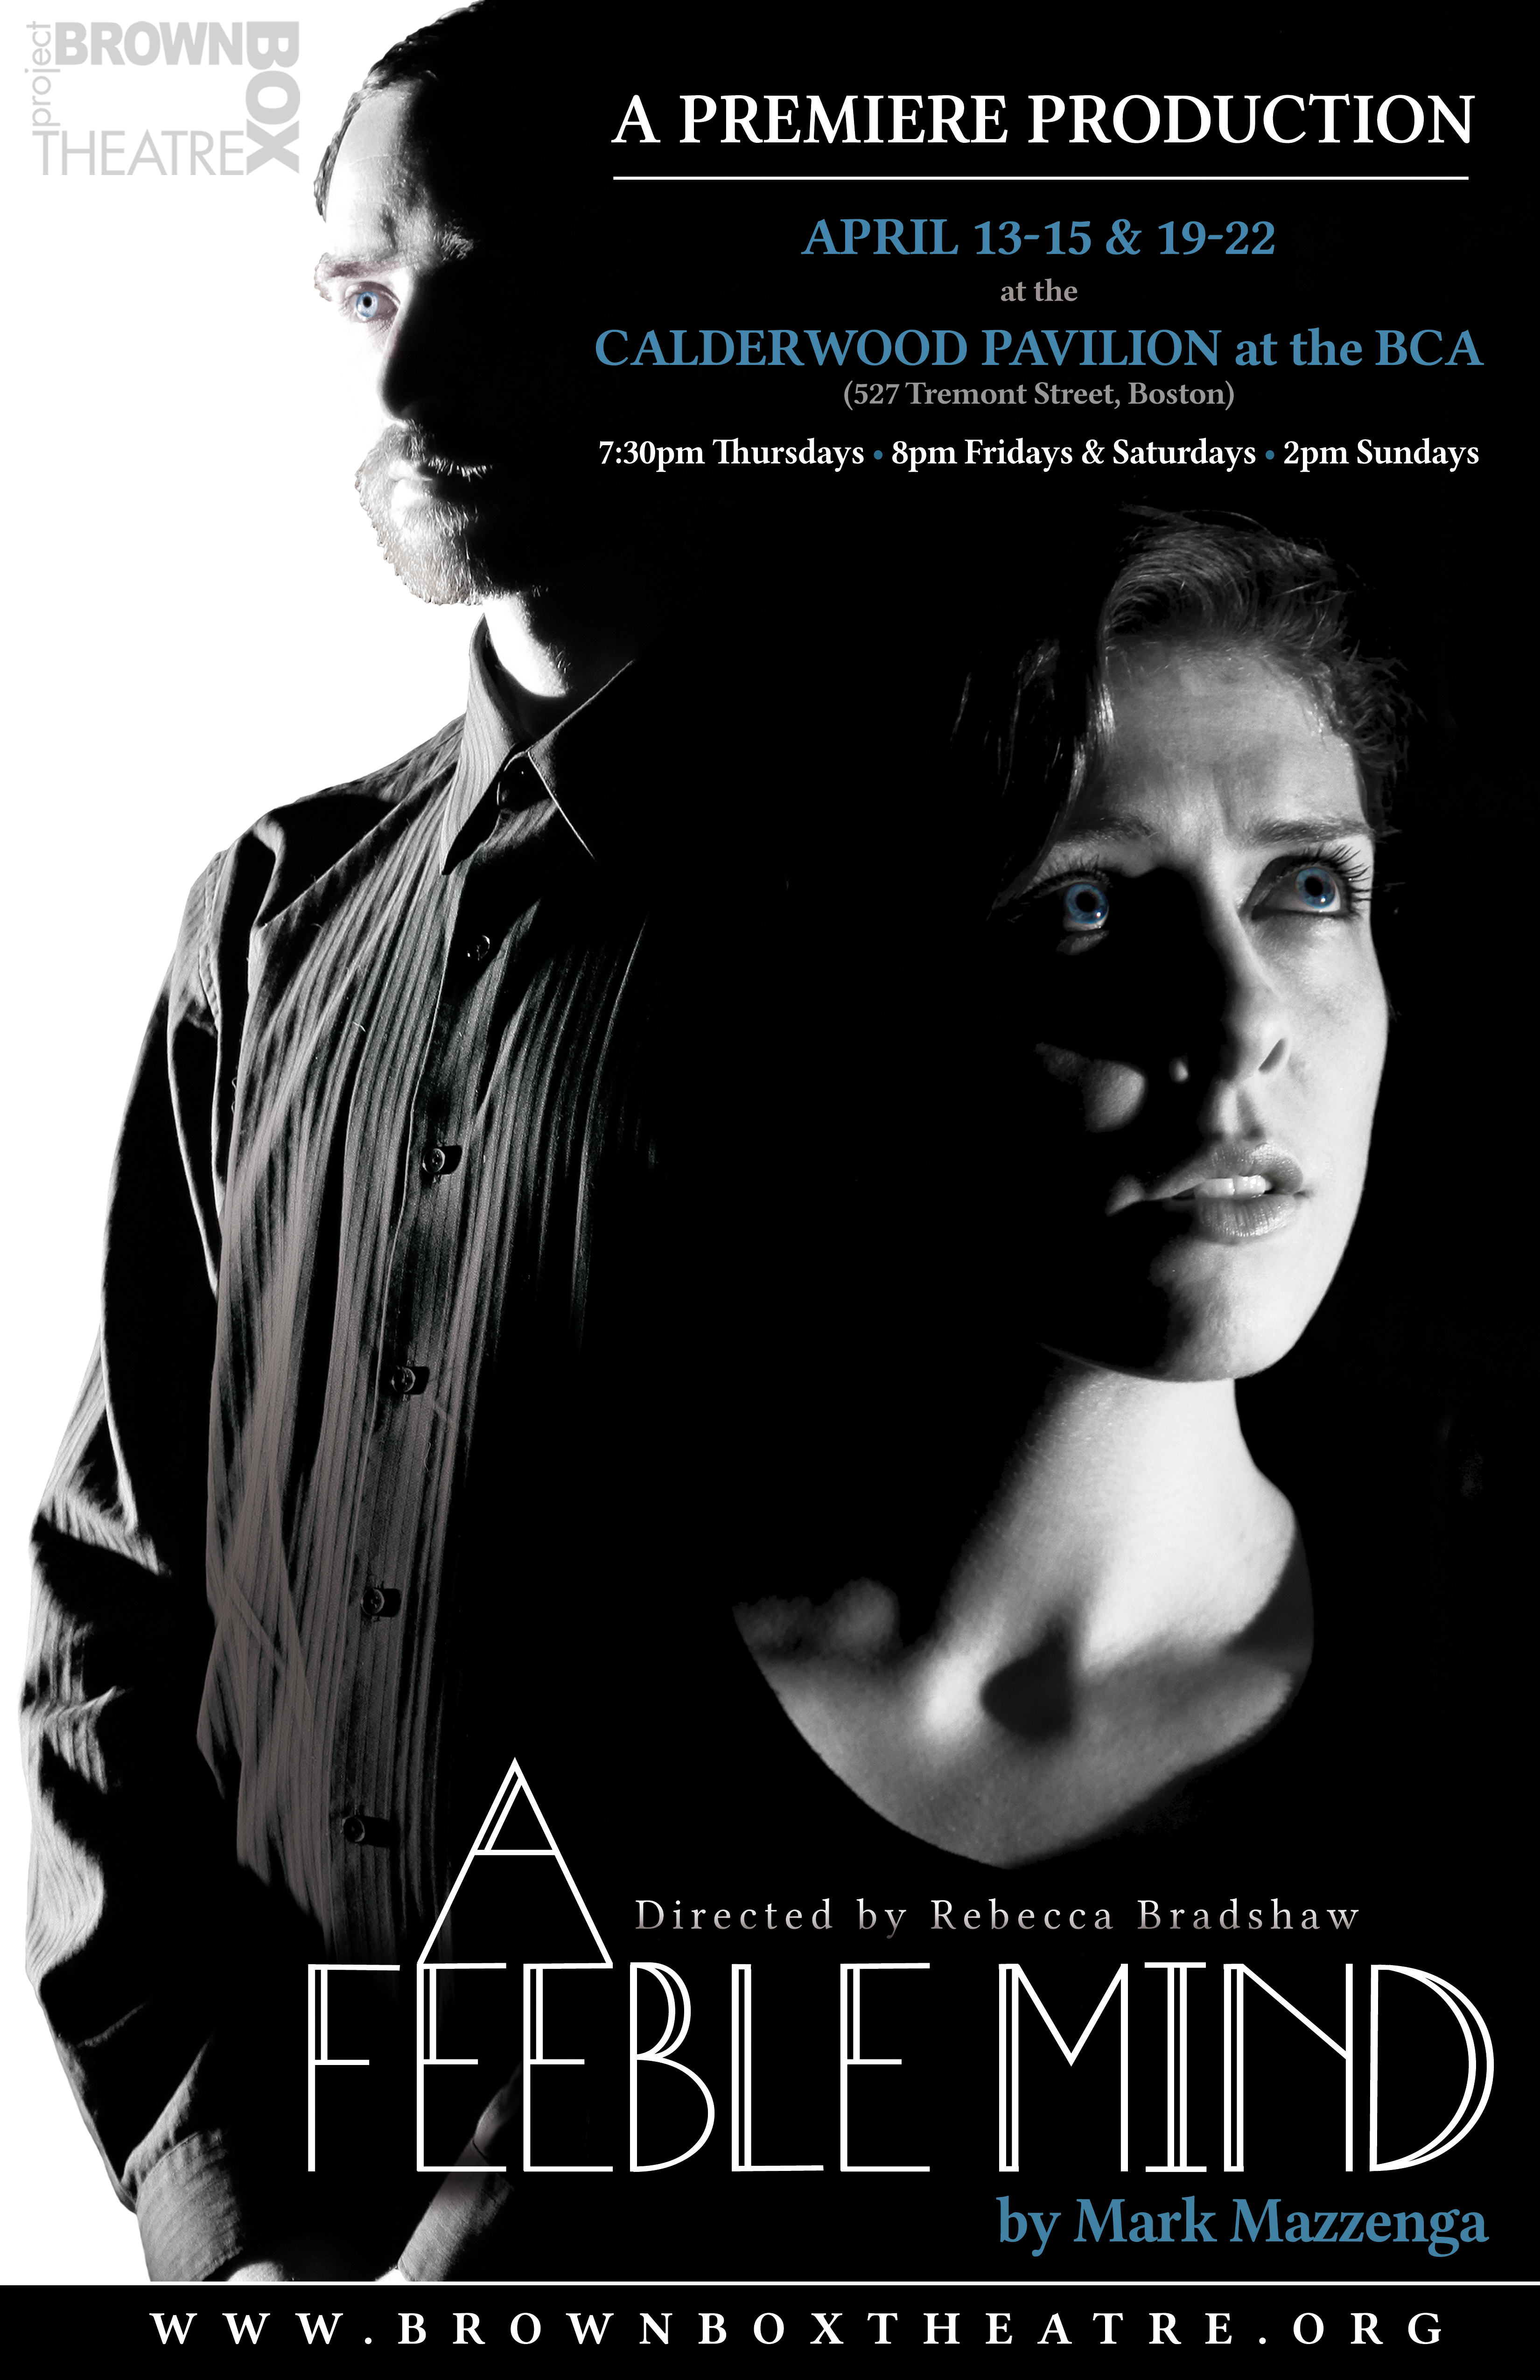 black and white poster for A Feeble Mind play